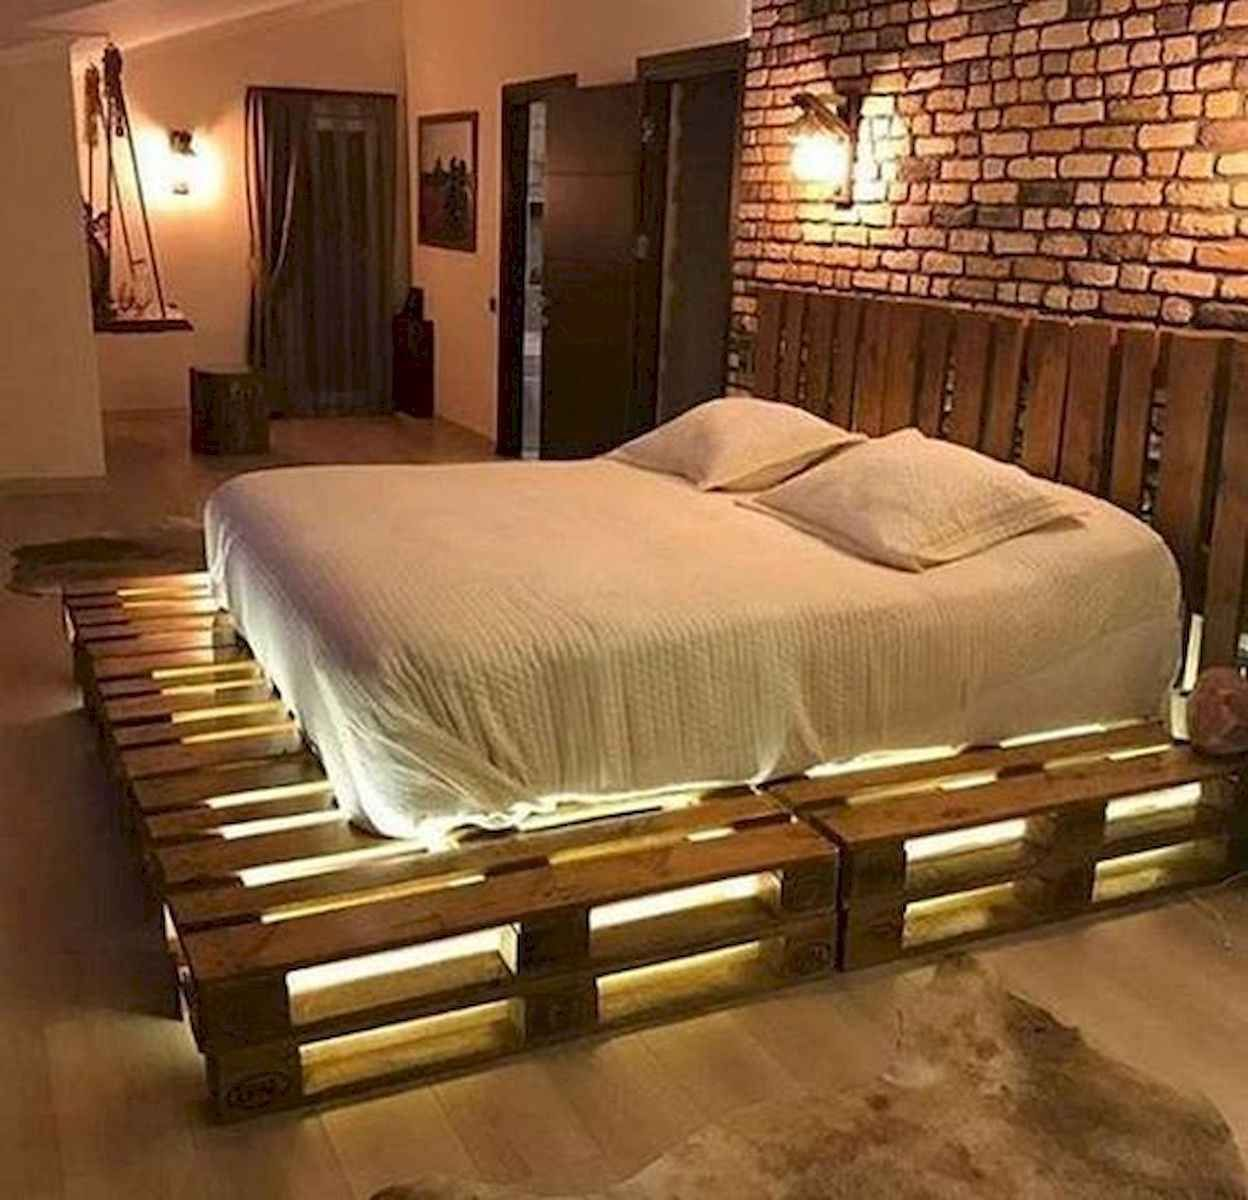 50 Creative Recycled DIY Projects Pallet Beds Design Ideas